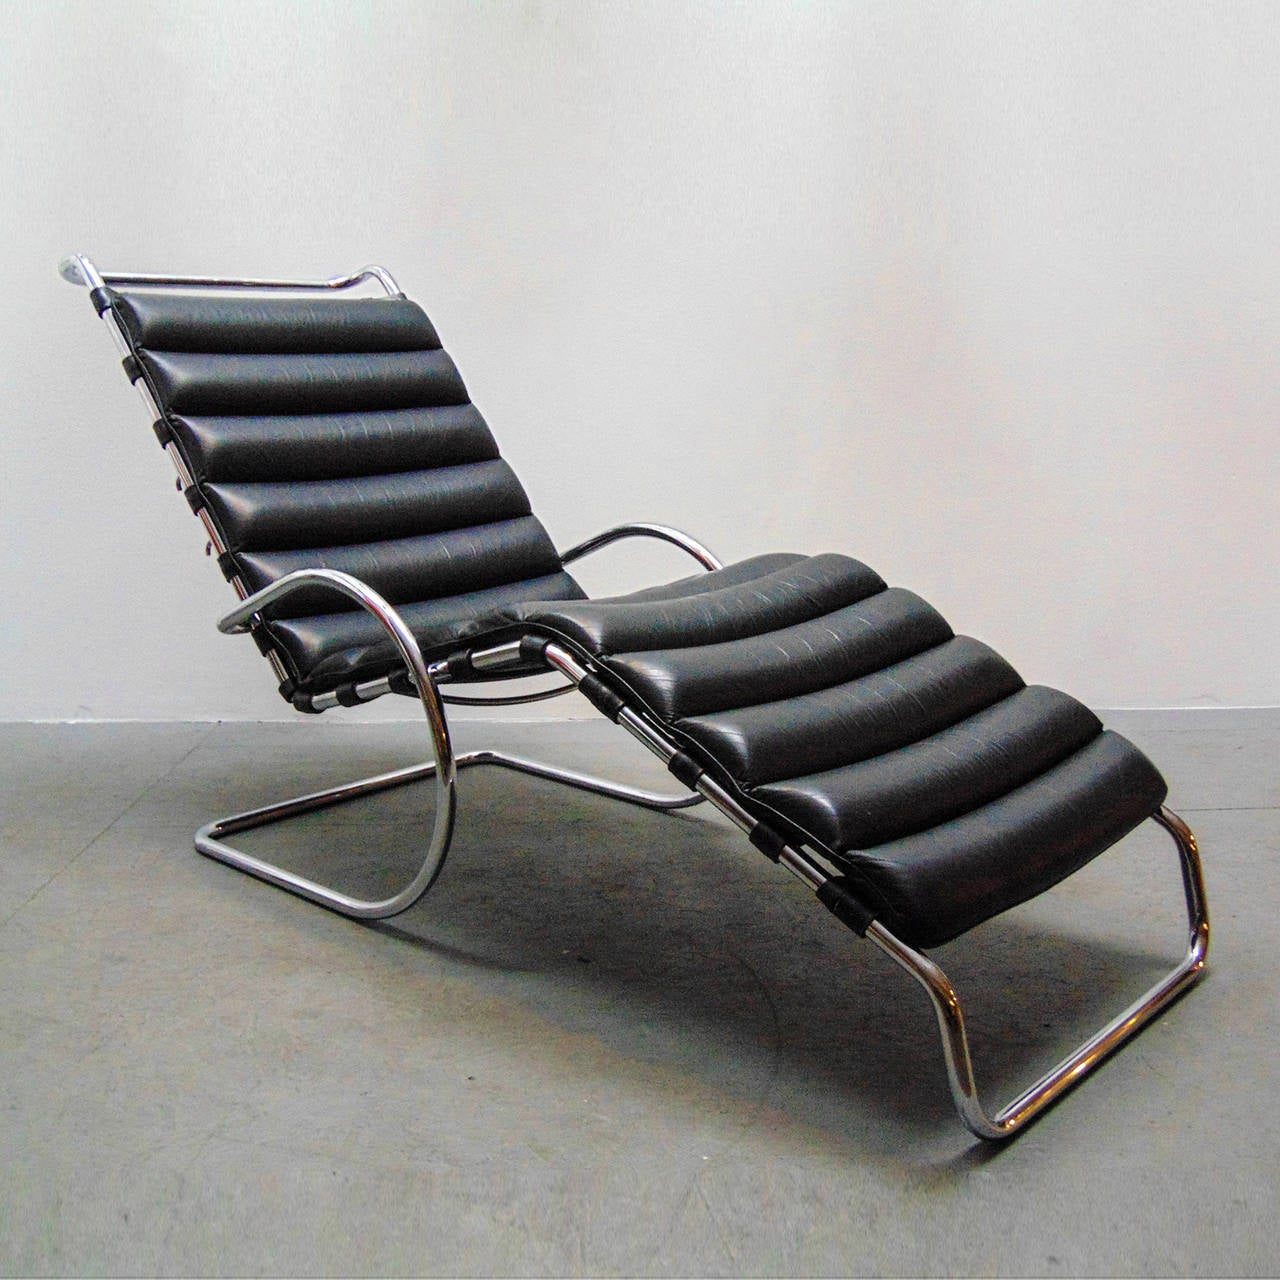 Mies van der rohe mr chaise longue at 1stdibs for Barcelona chaise longue